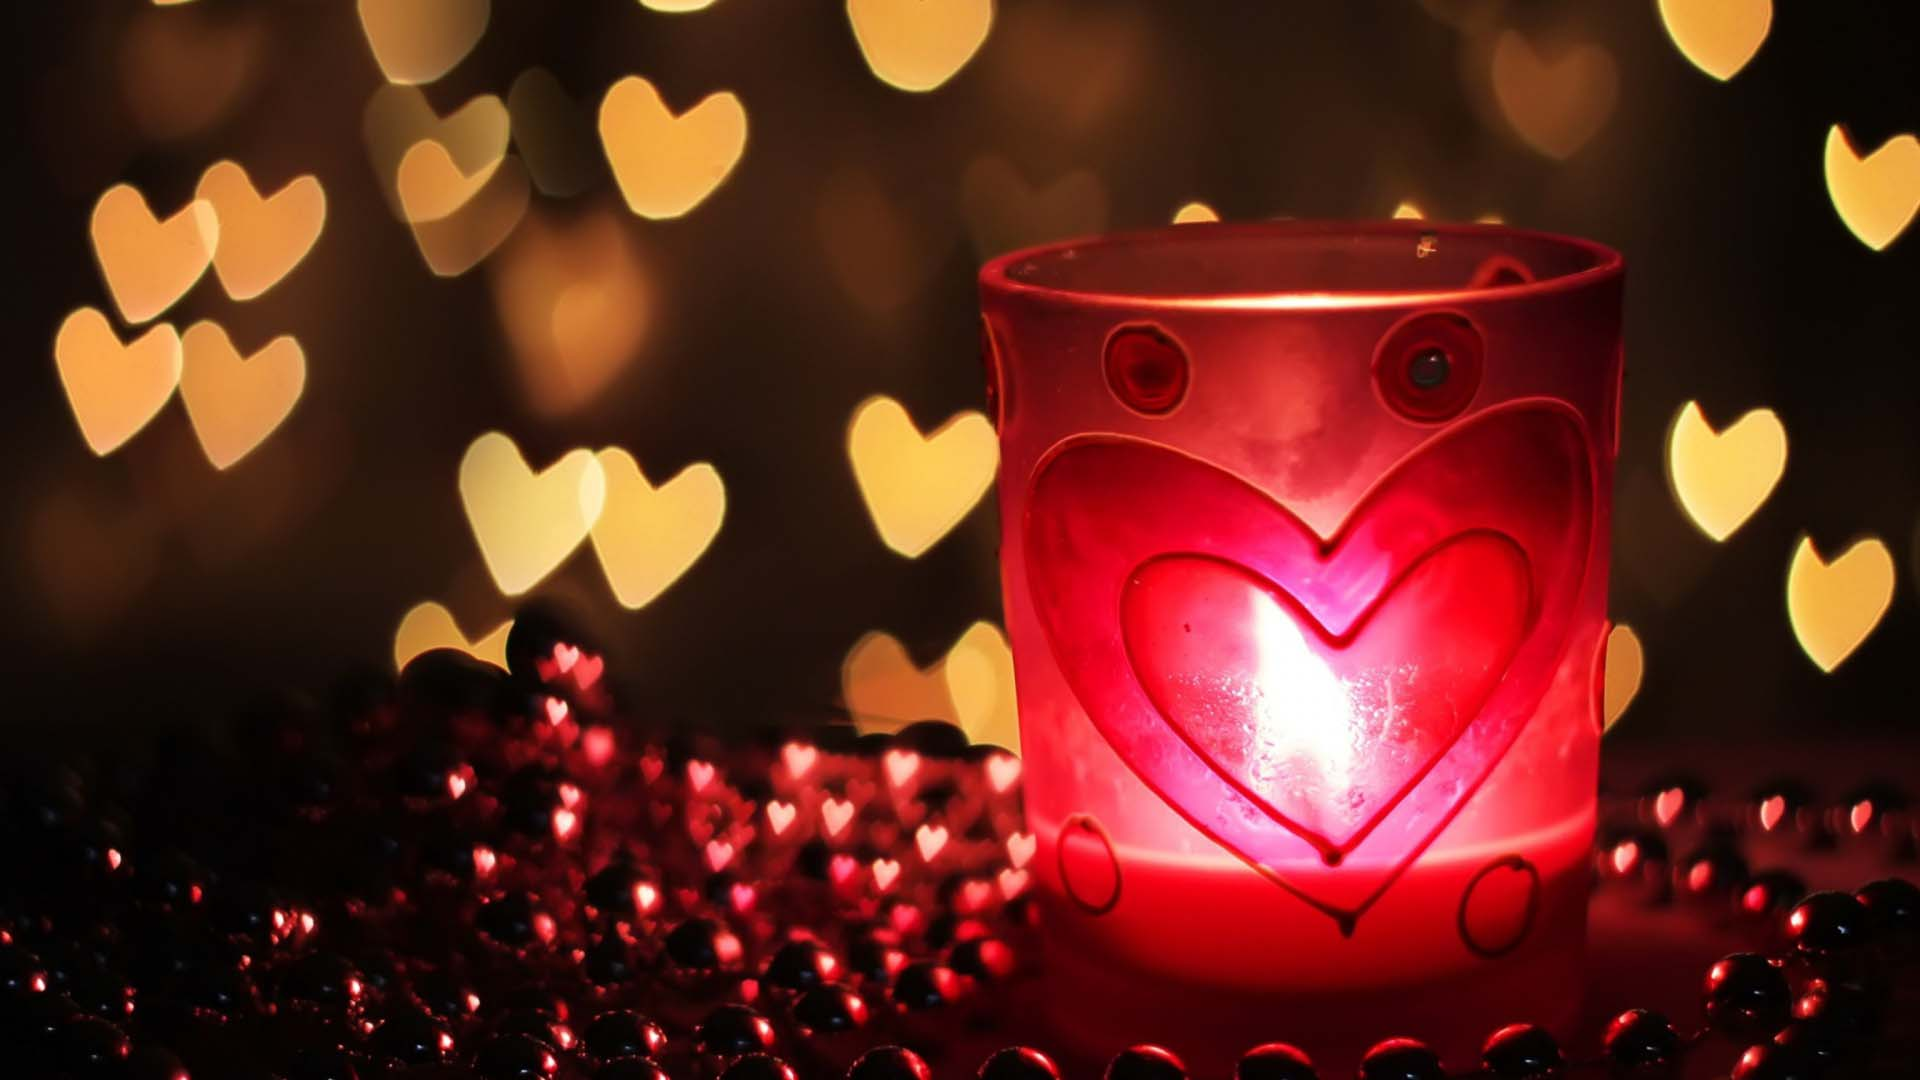 Download Wallpapers For Love Group 74